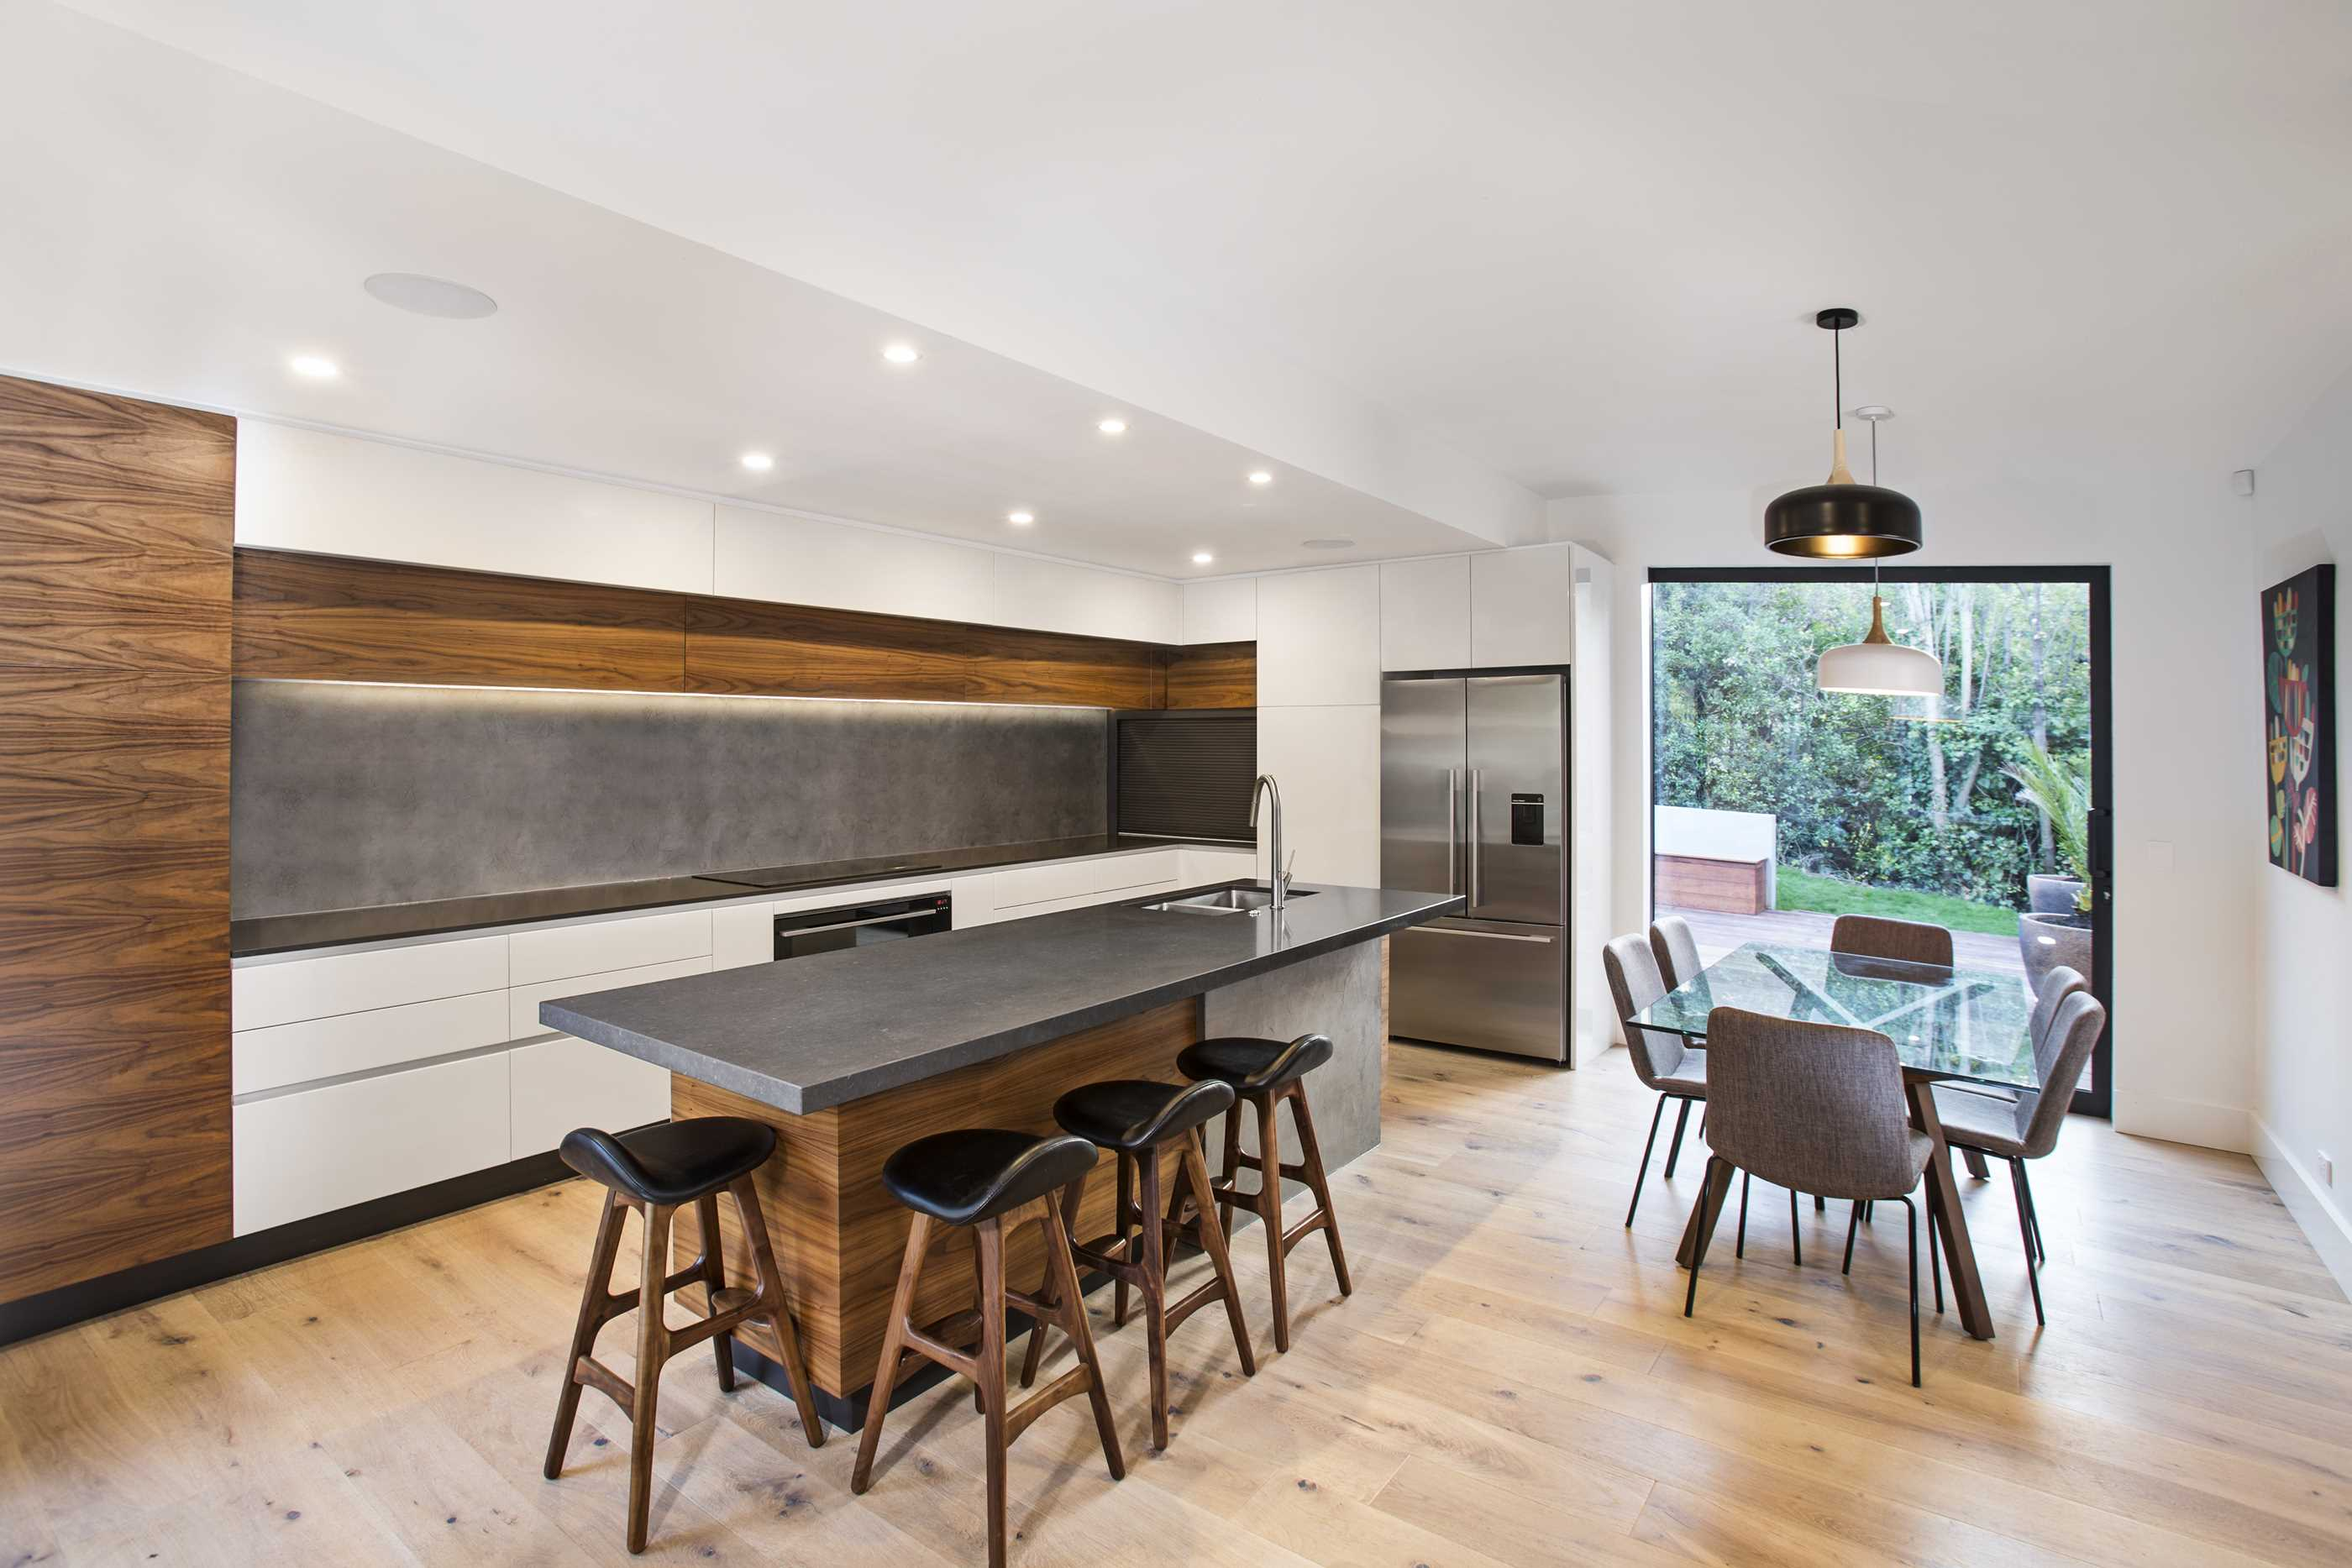 Sharing link successfully copied to clipboard paste it wherever you like dismiss prime natural veneer american walnut crown cut kitchen by modern